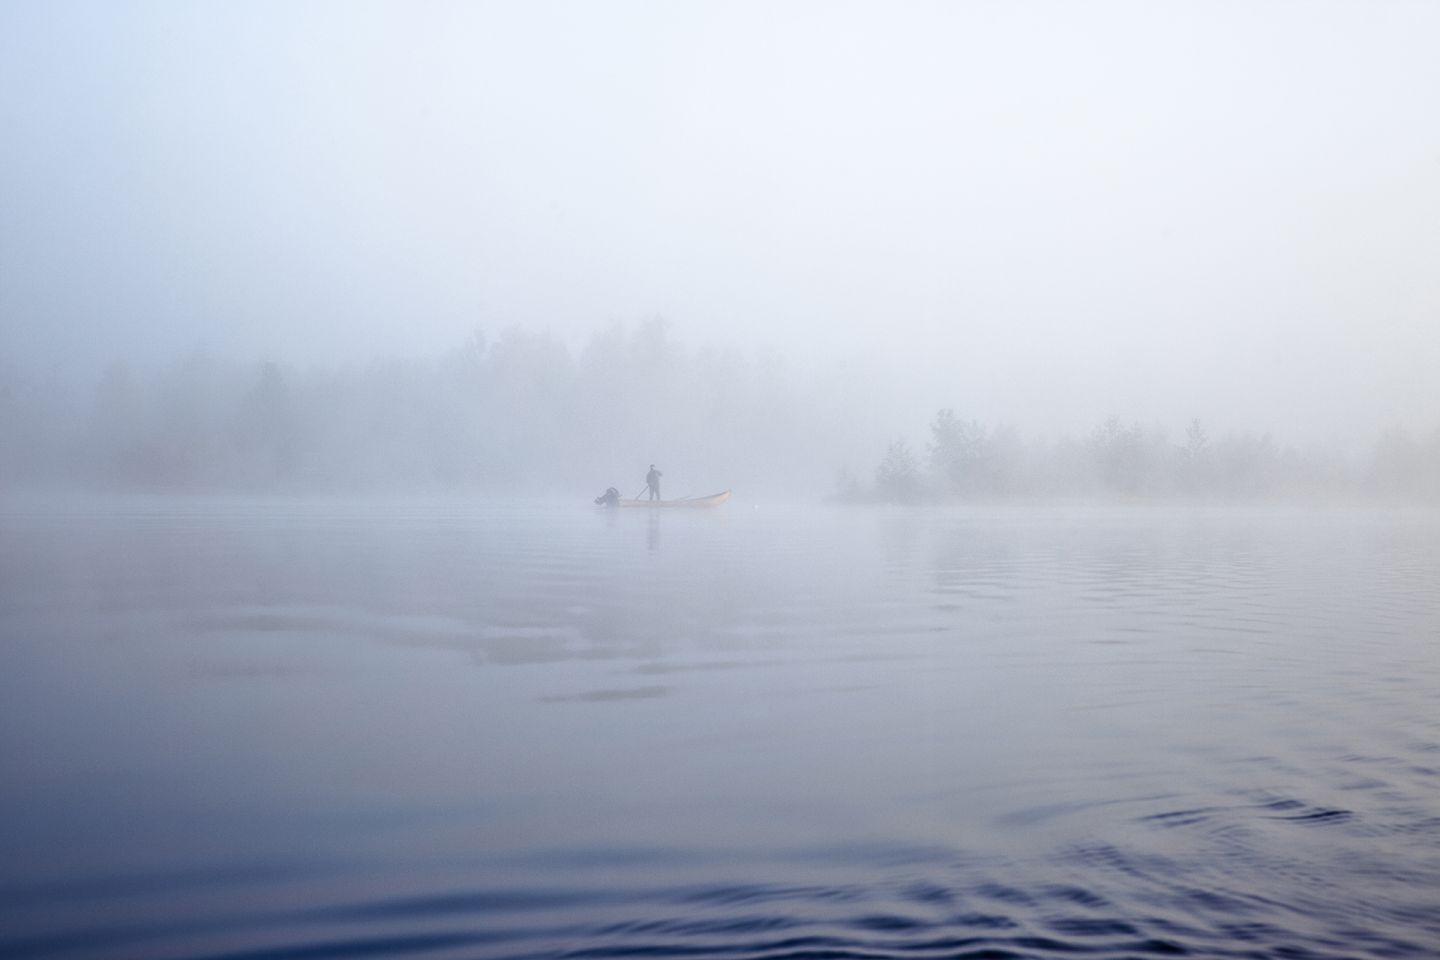 A foggy lake and a boat